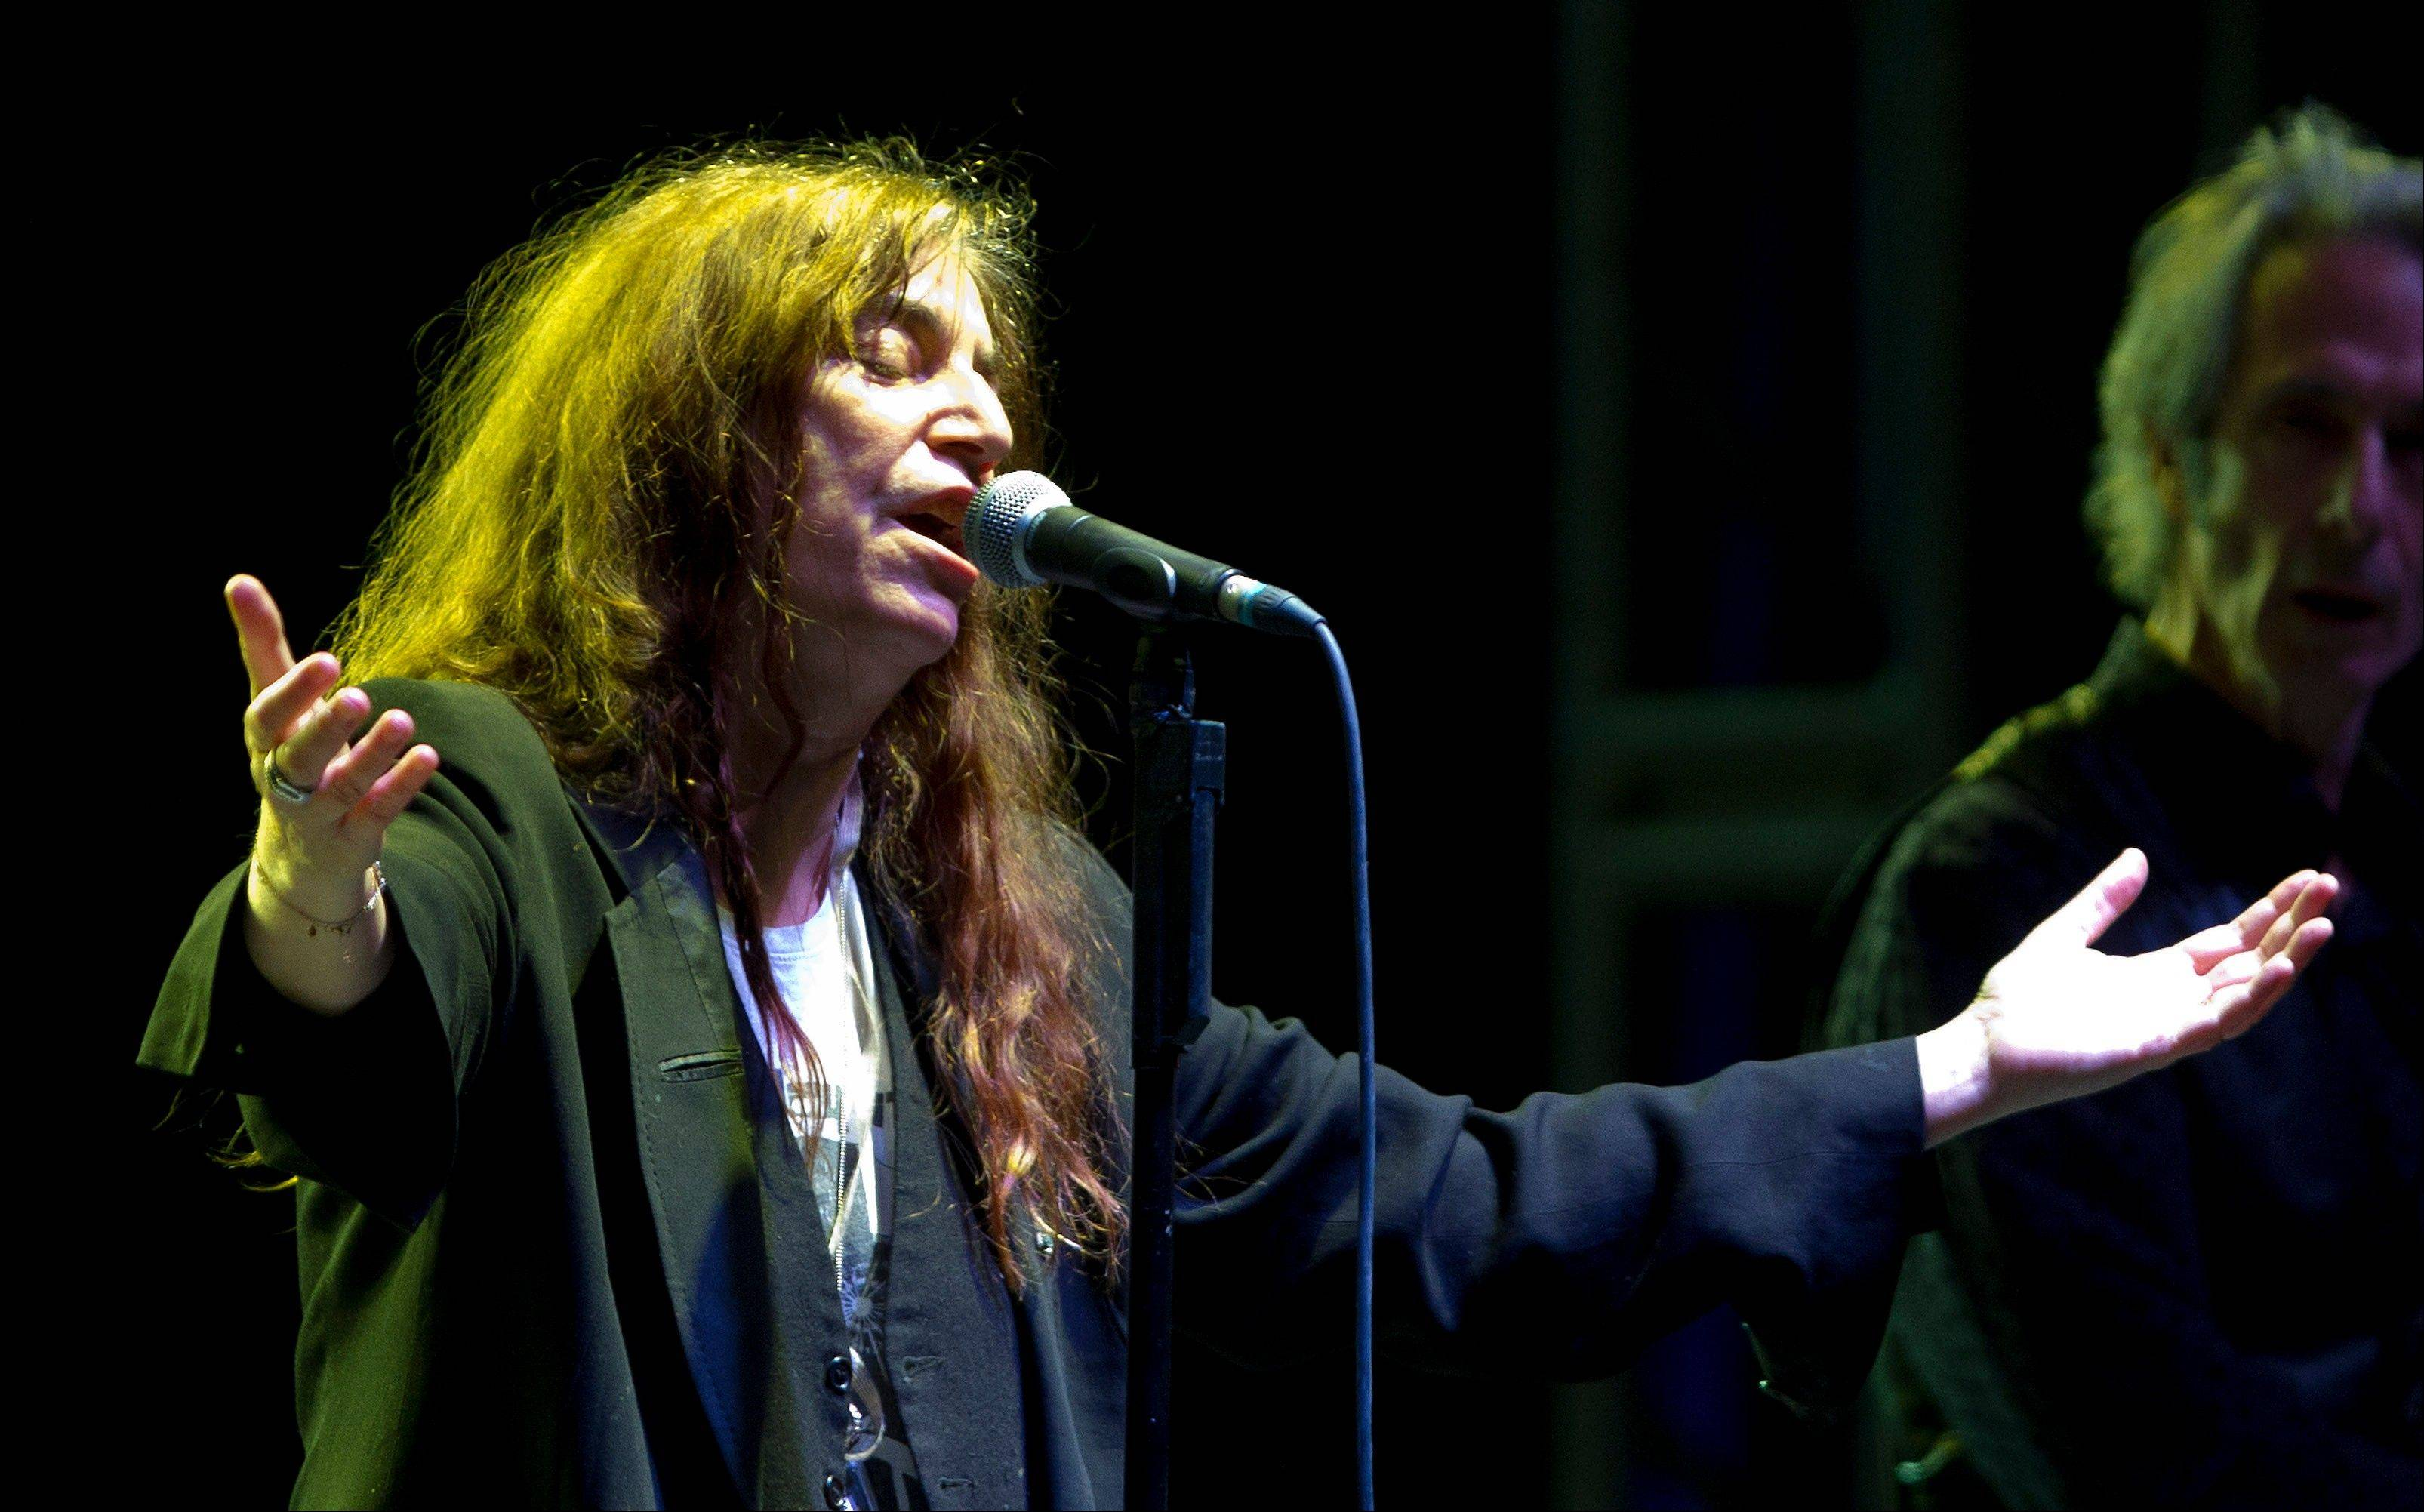 Rock singer Patti Smith performs during a May 5 concert in Mexico City.